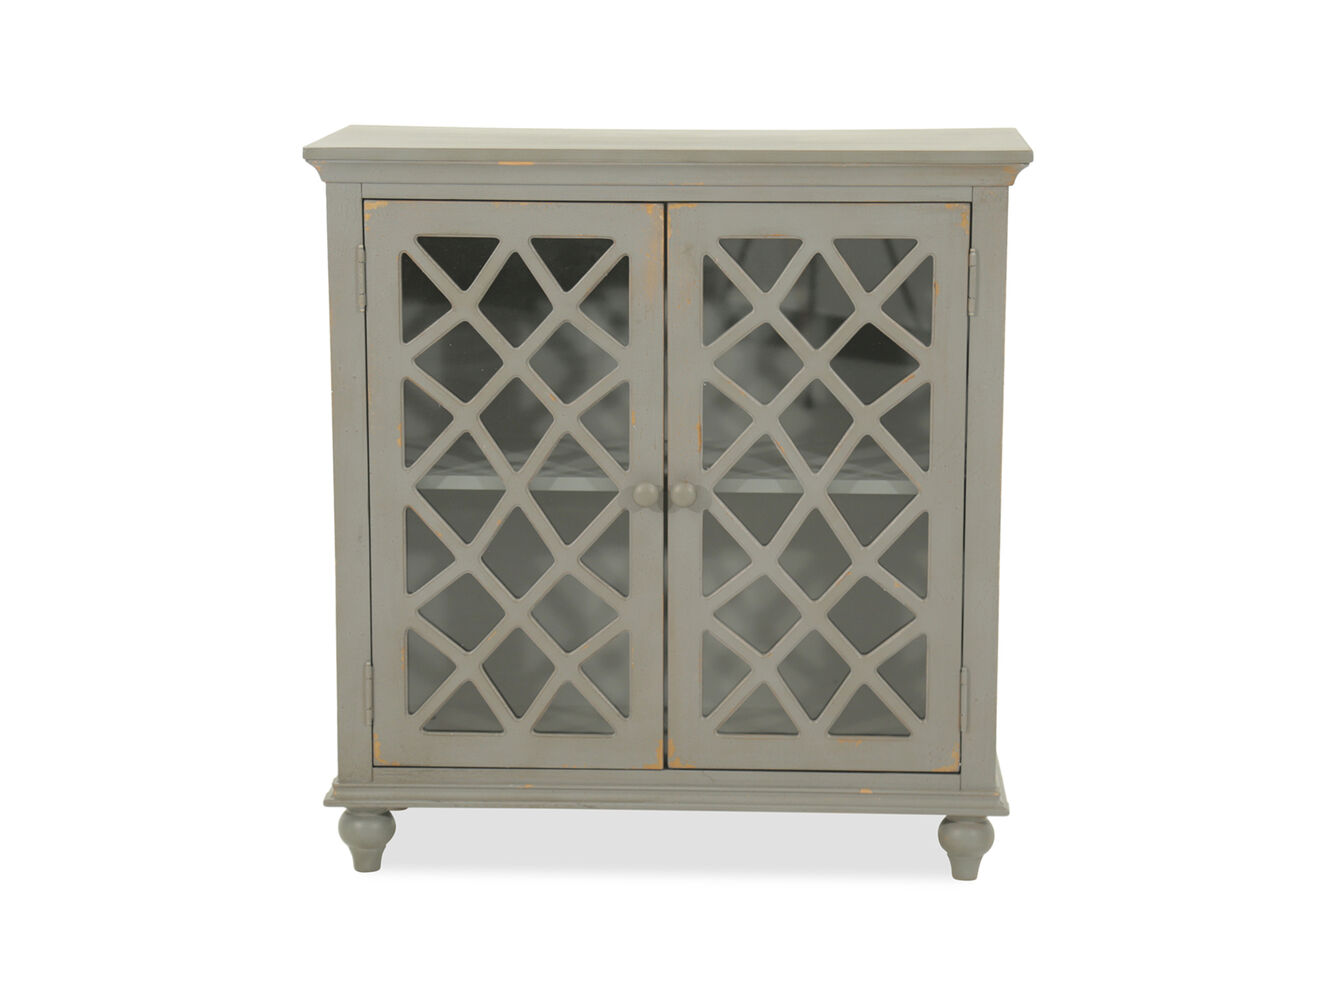 Lattice Doors Cottage Small Accent Cabinet In Gray Mathis - Small grey cupboard